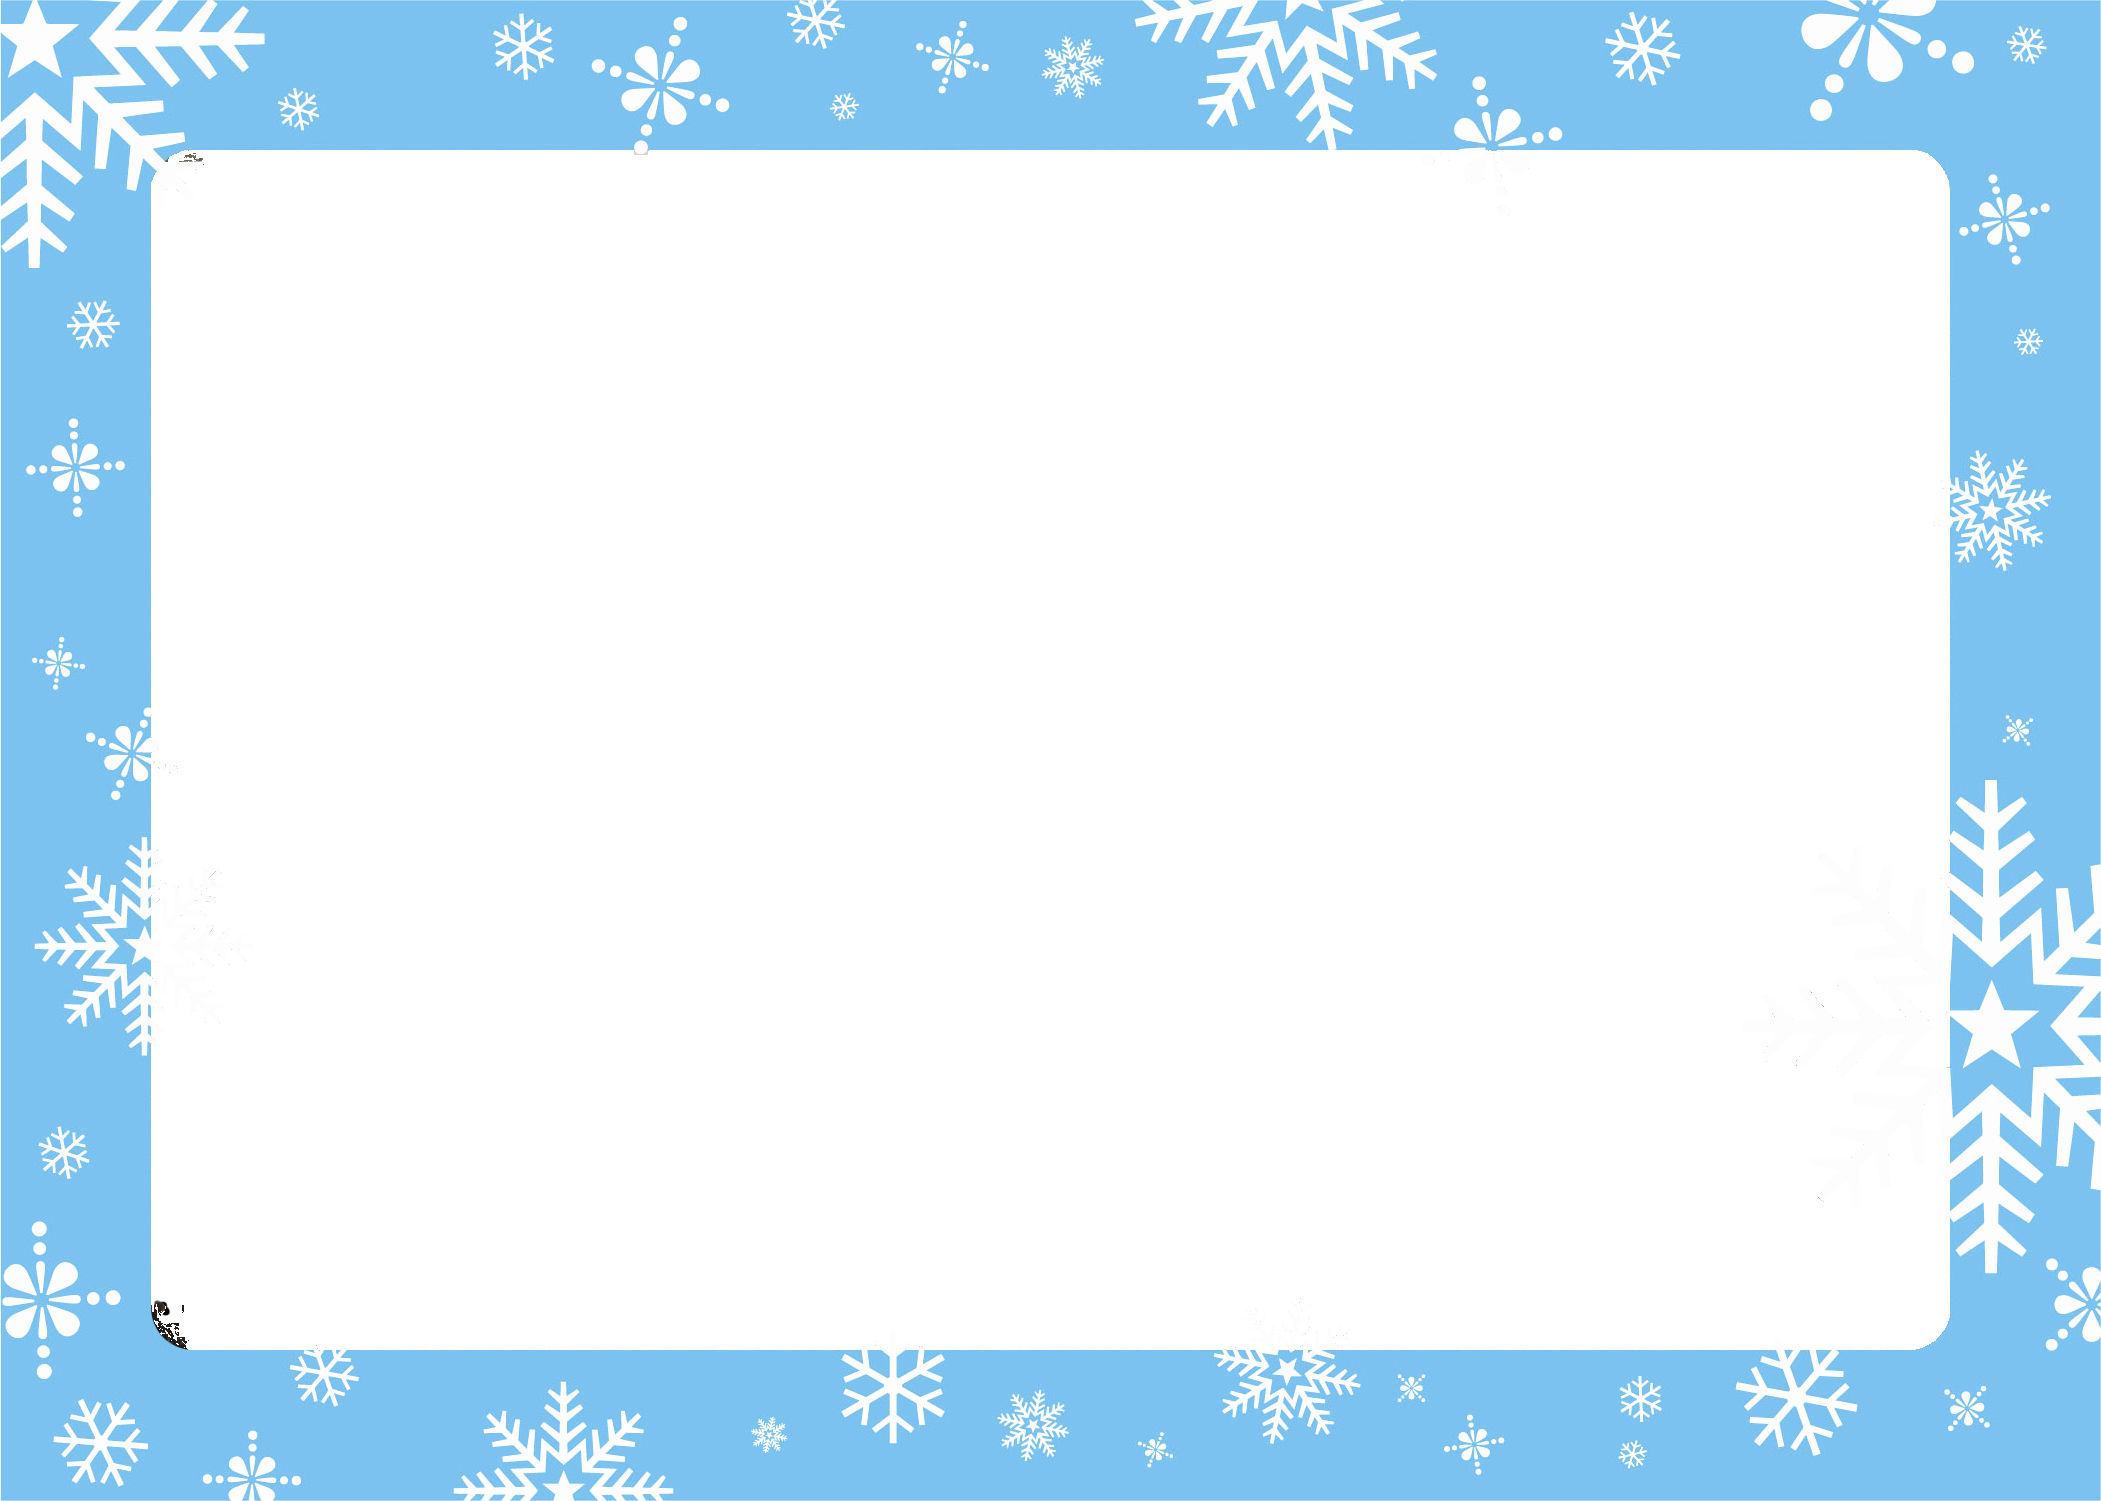 Free Greeting Card Templates New Free Christmas Picture Border Frames